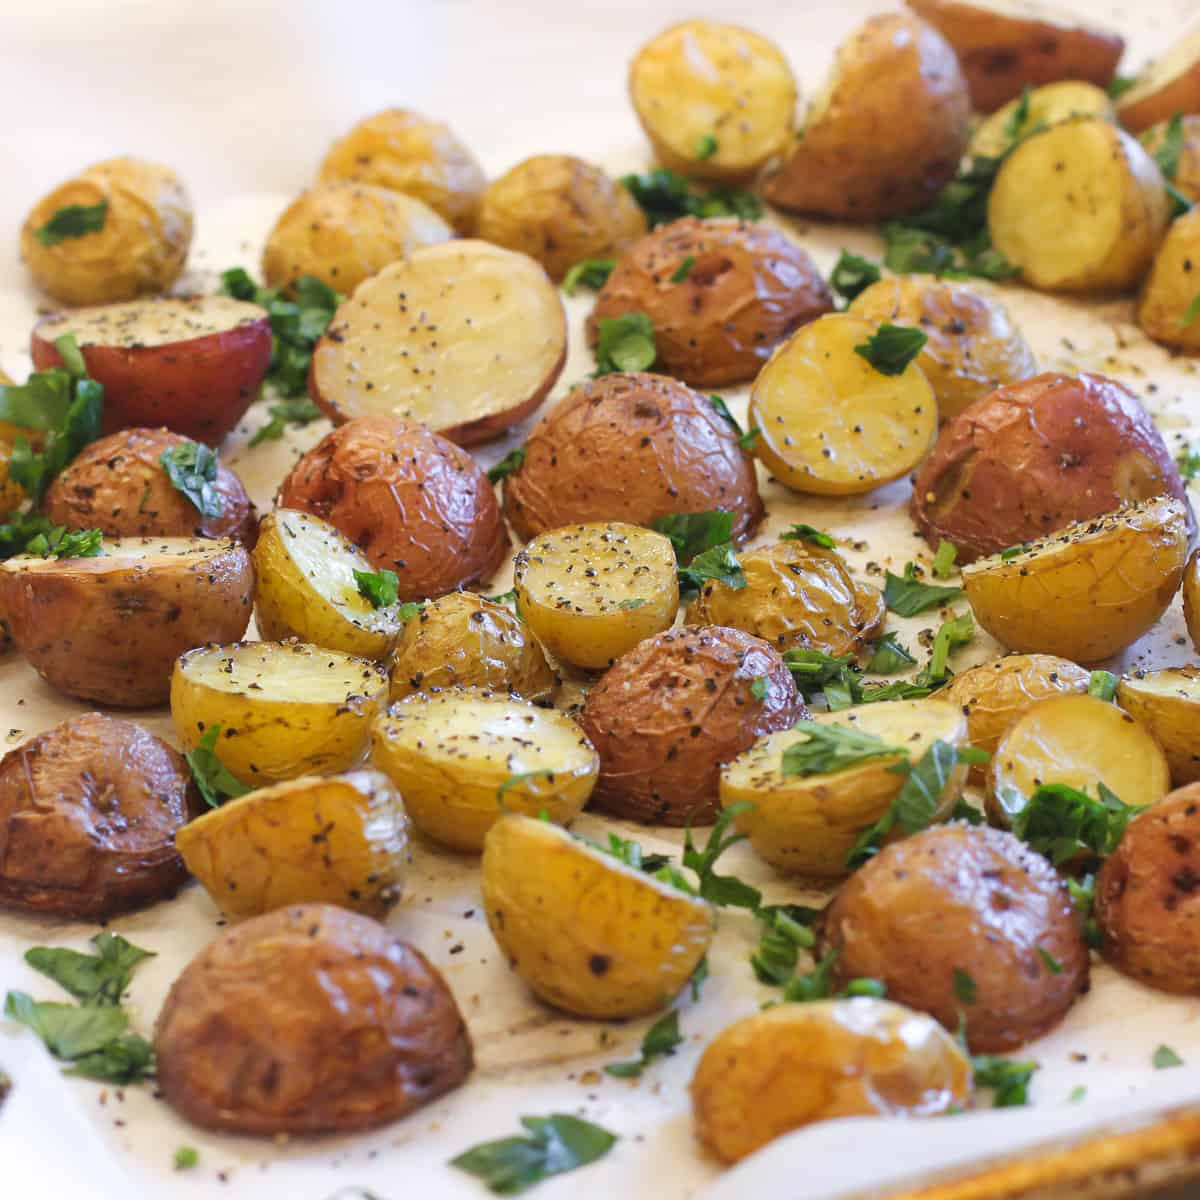 Roasted potatoes garnished with fresh parsley.